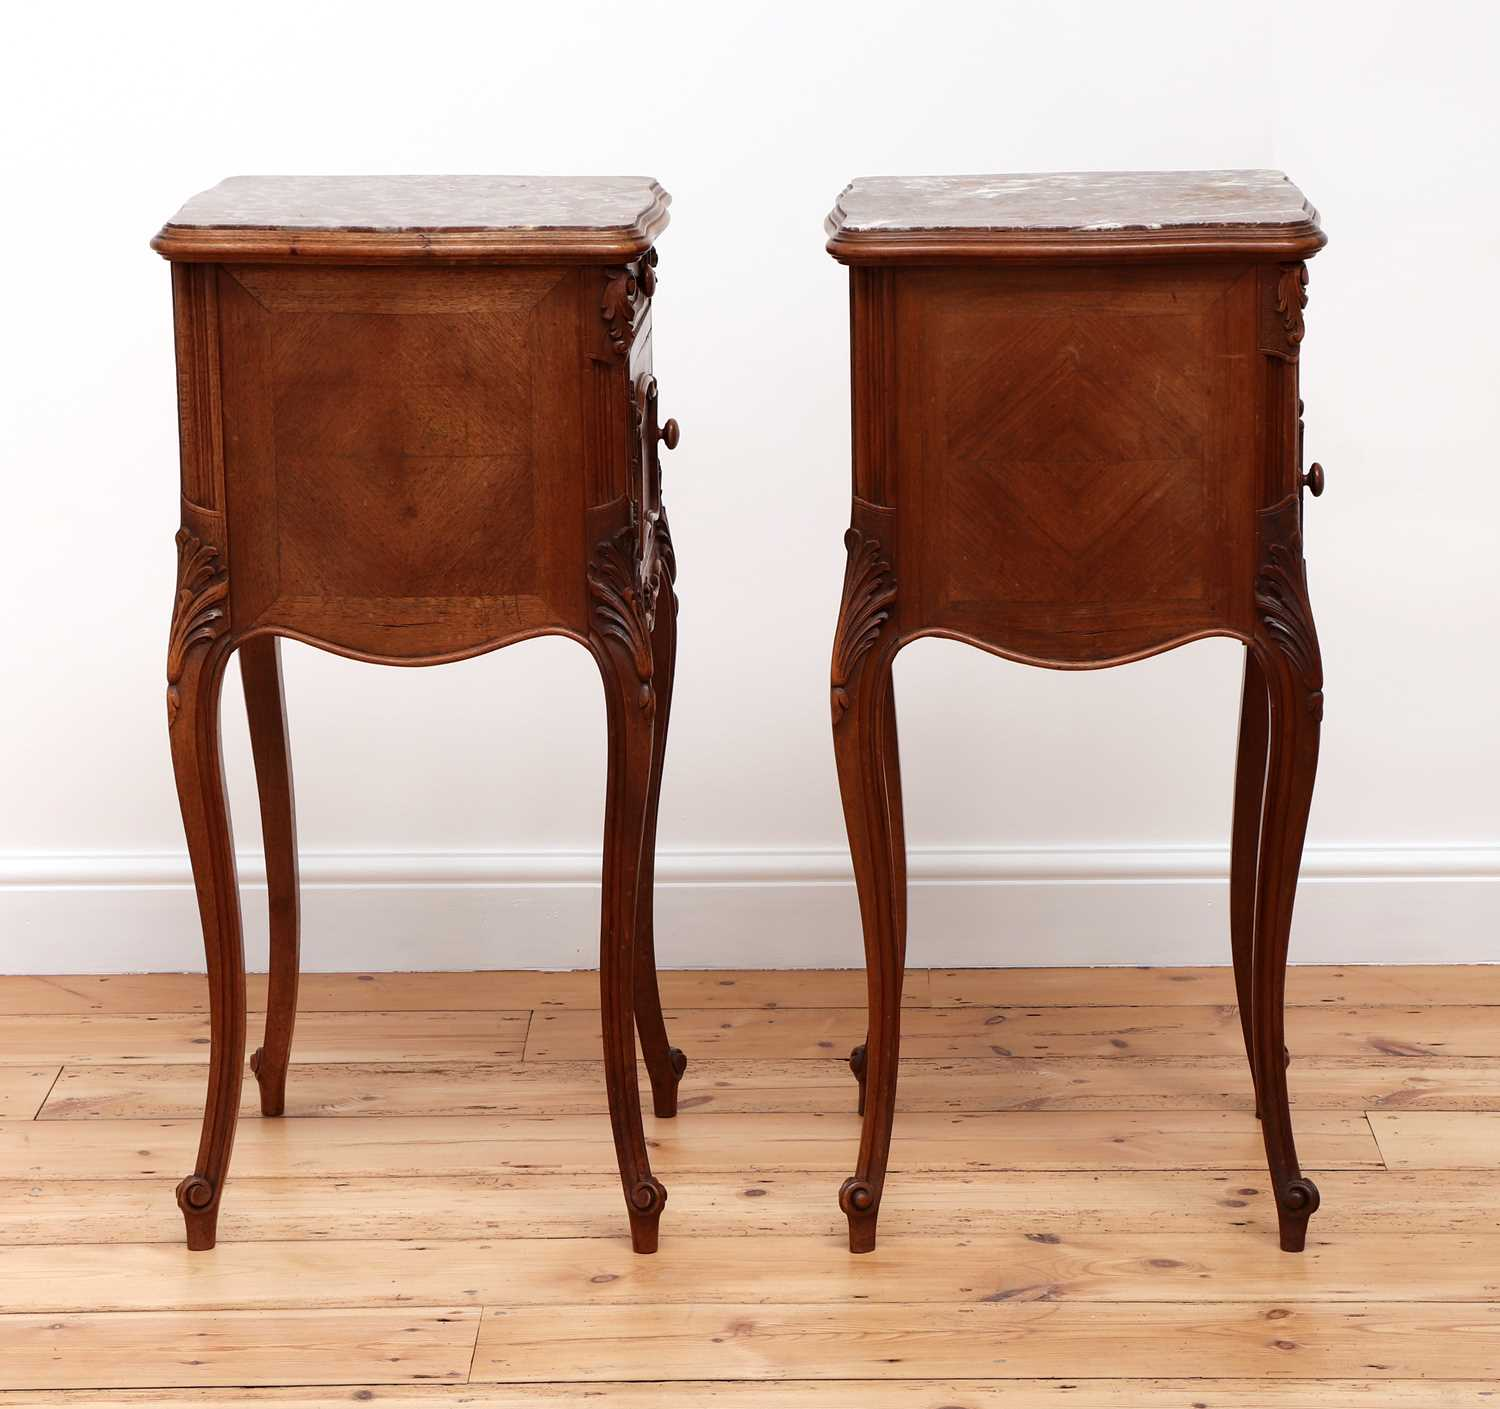 A pair of French Louis XV-style walnut bedside cabinets - Image 3 of 5